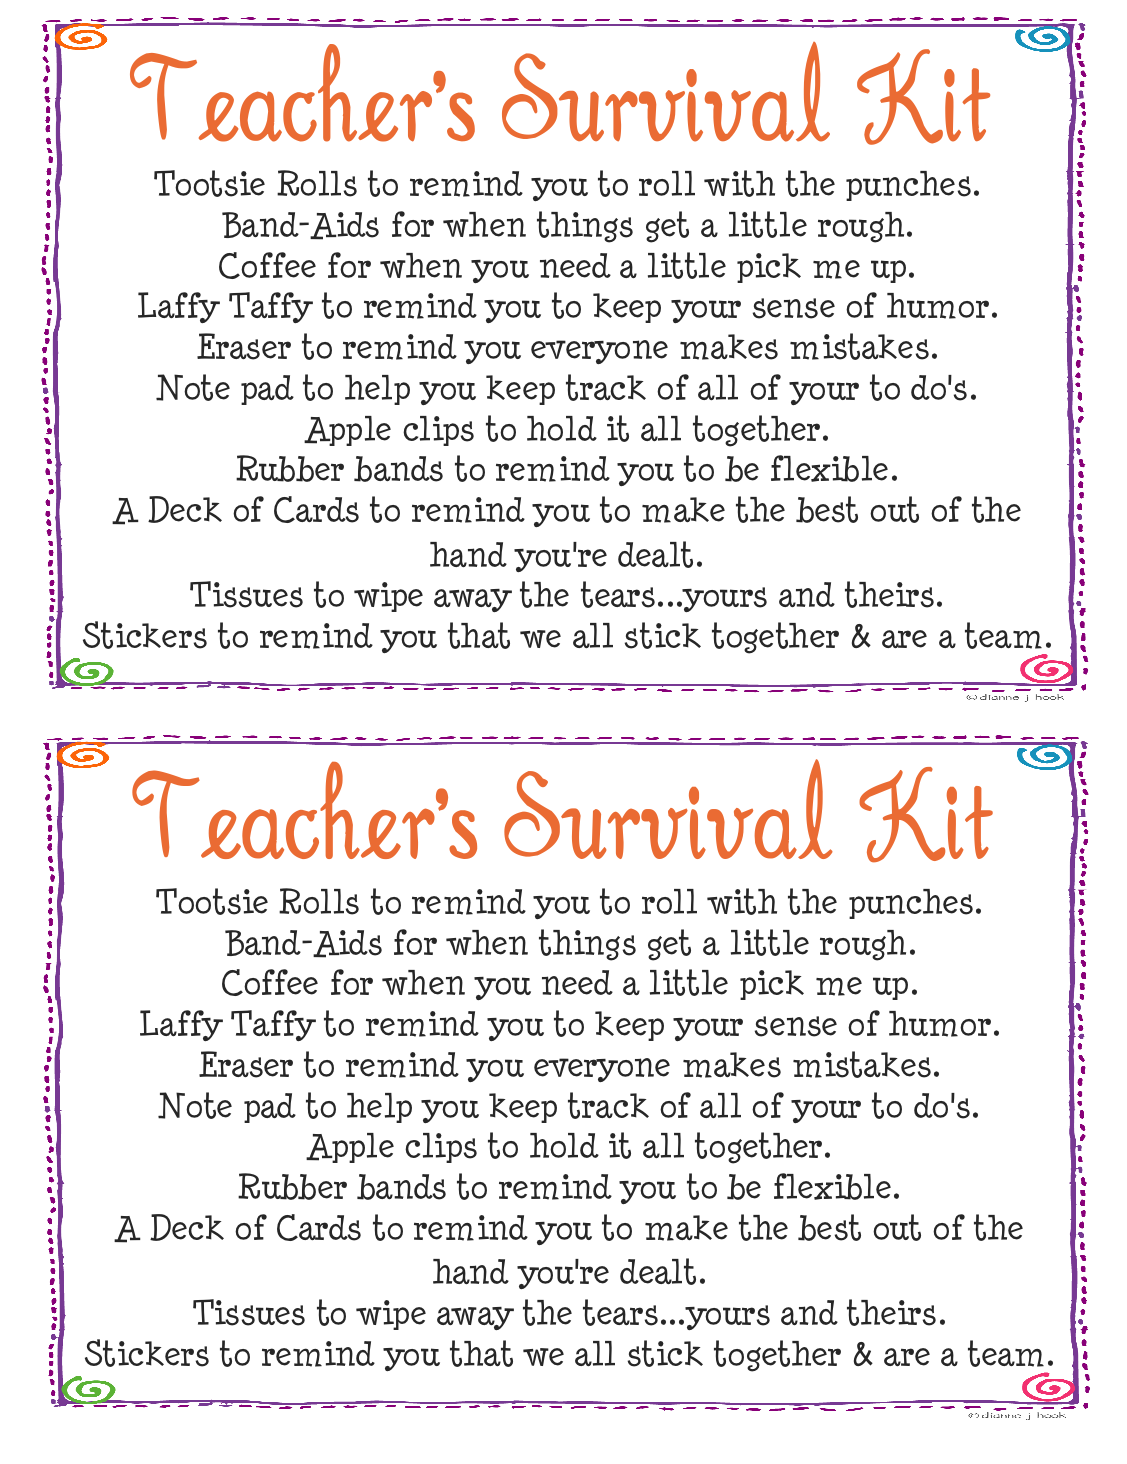 Pics photos funny college survival kit ideas - Humorous Survival Kits For Teachers Teacher S Survival Kit